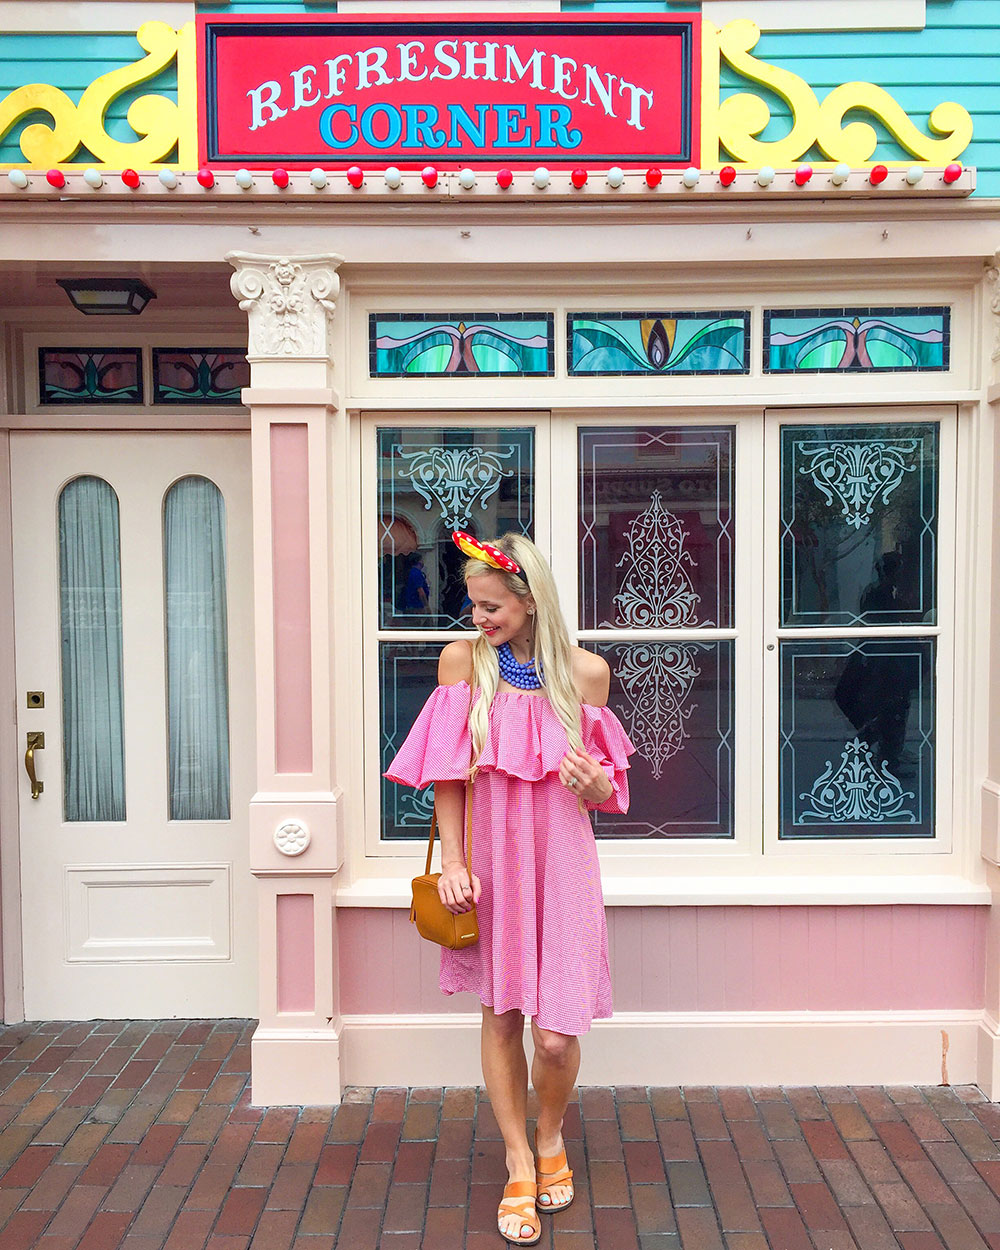 vandi-fair-blog-lauren-vandiver-dallas-texas-southern-fashion-travel-blogger-our-california-adventure-road-trip-disneyland-main-street-chicwish-gingham-ruffle-dress